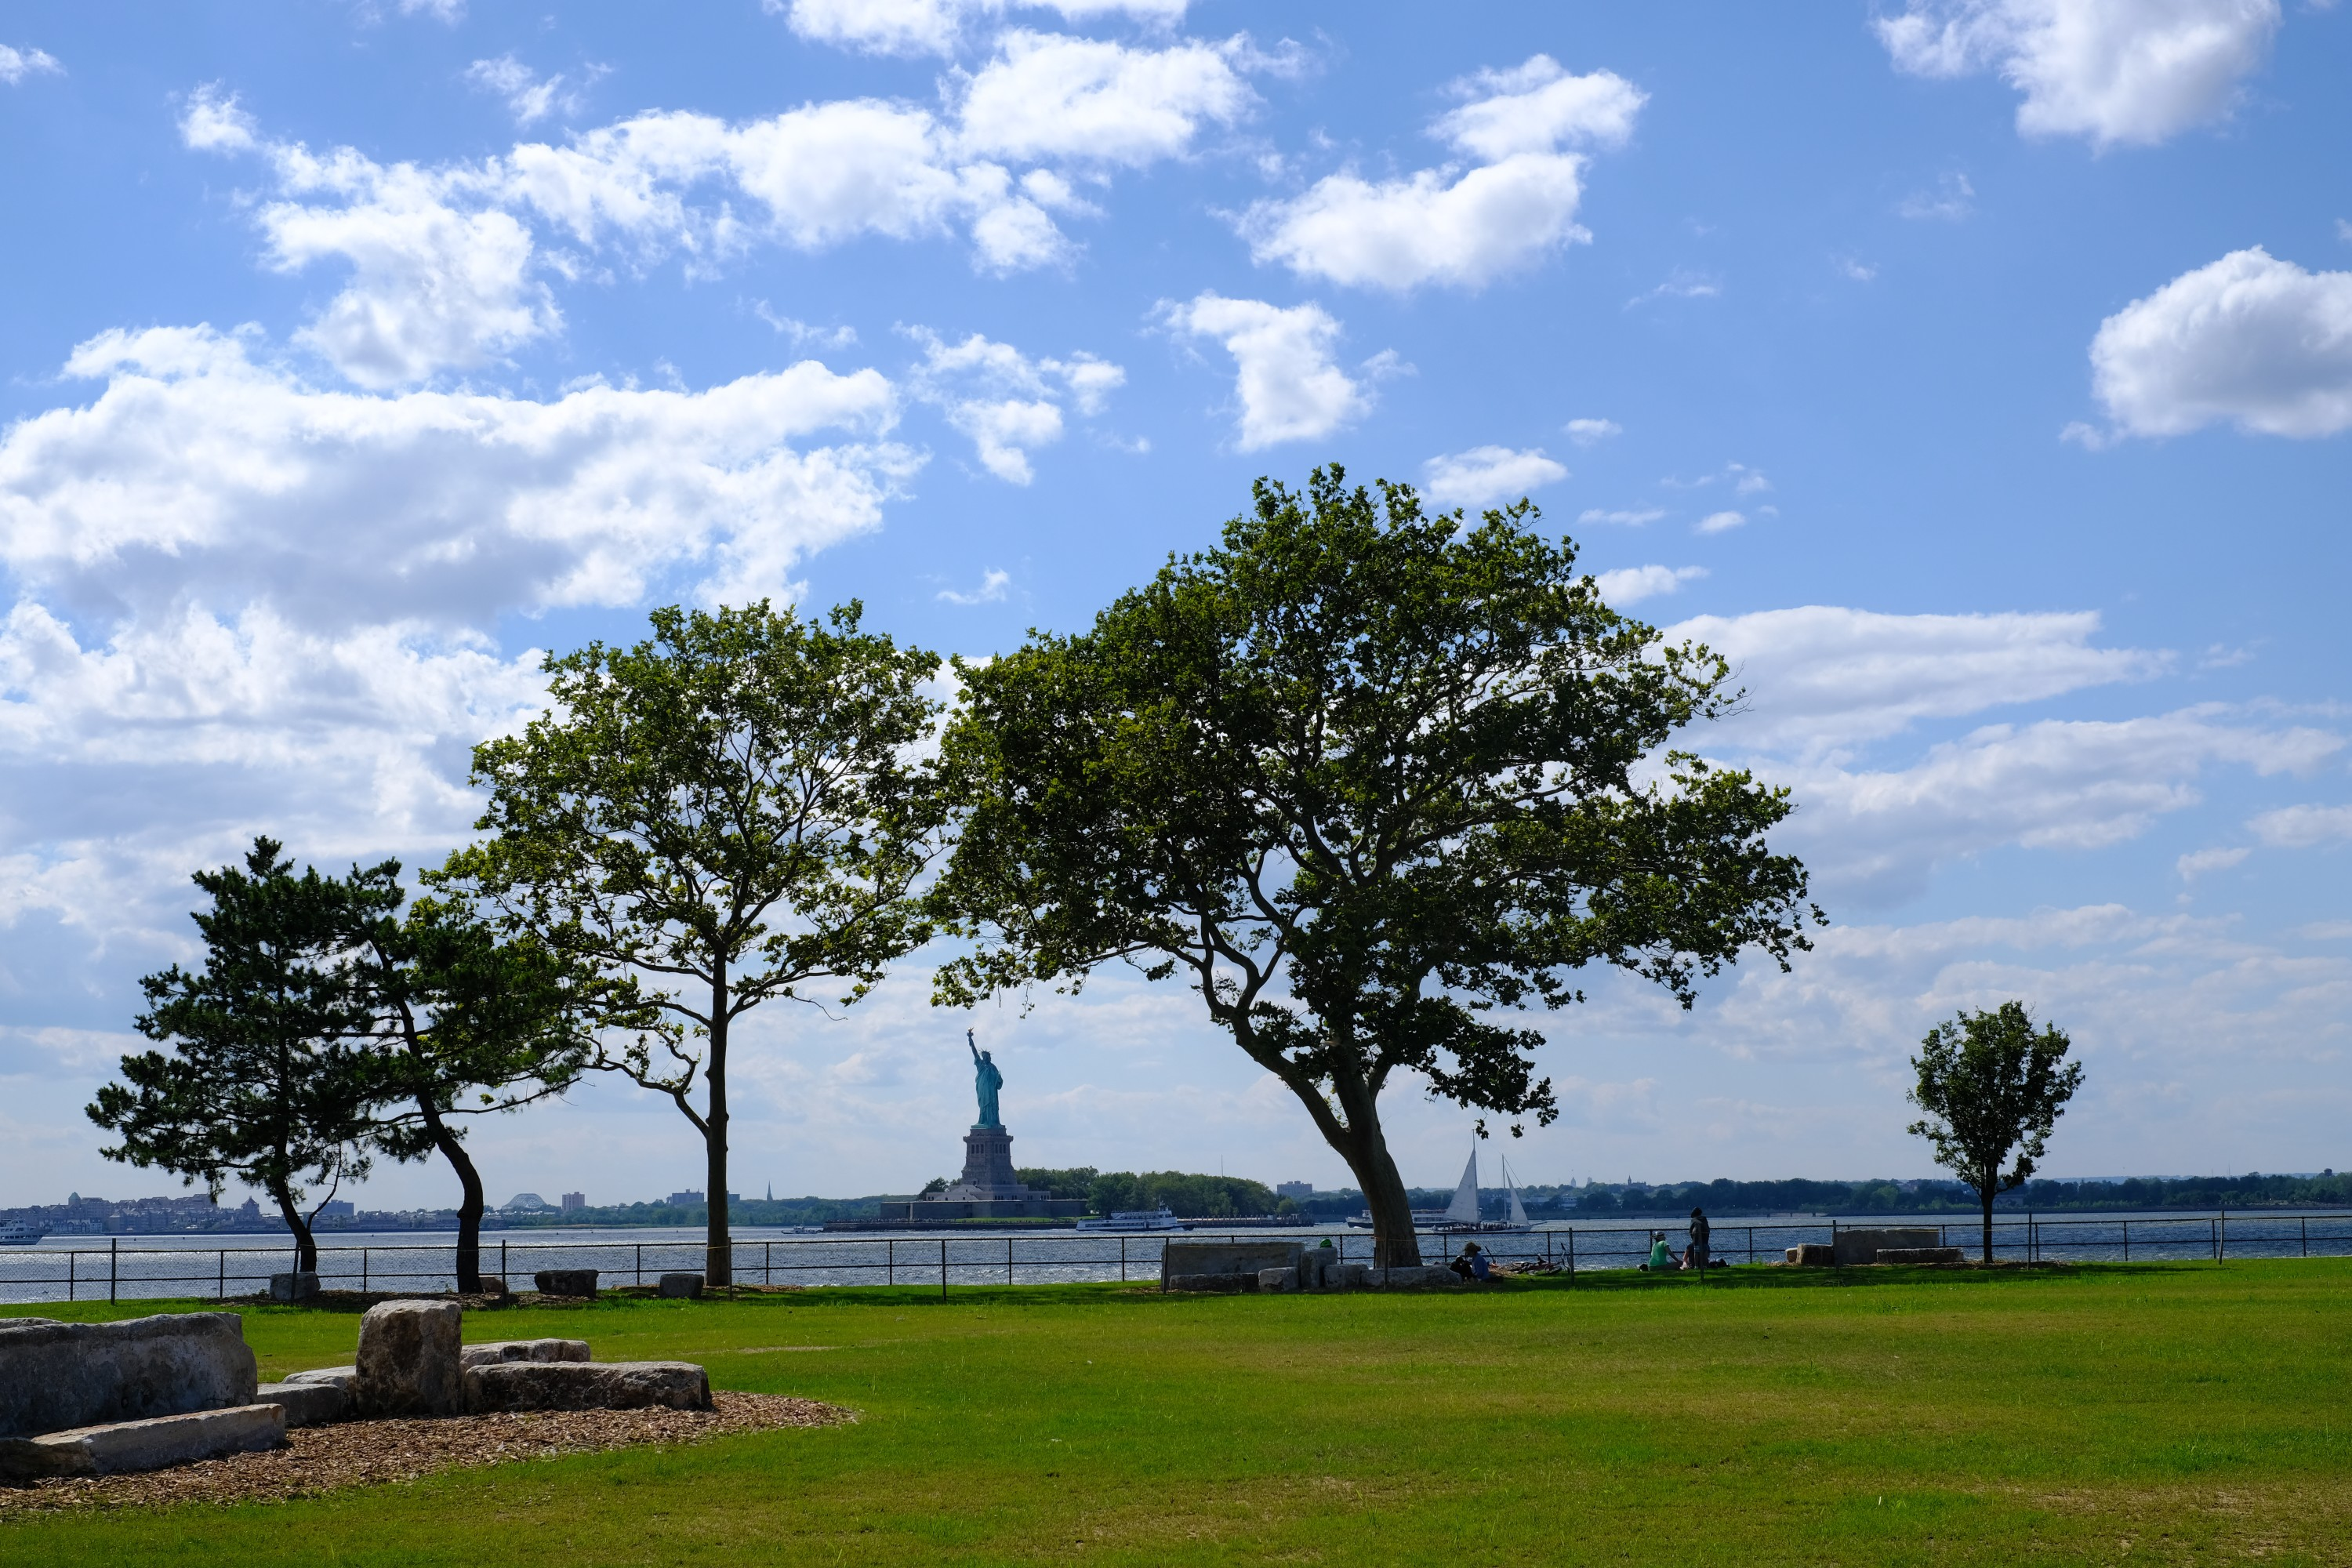 view of Statue of Liberty from Picnic Point